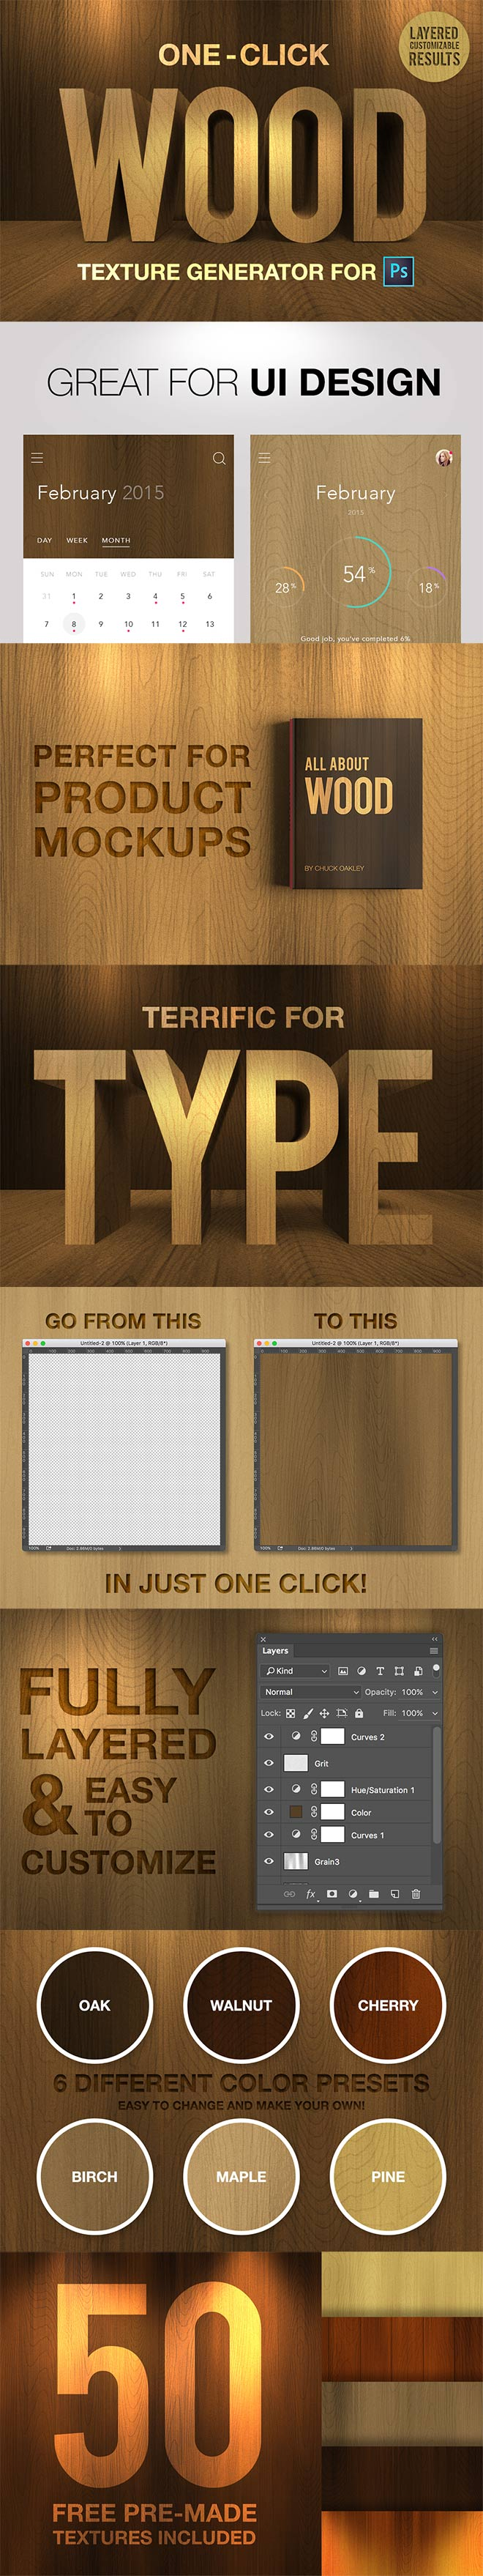 On Click Wood Texture Generator